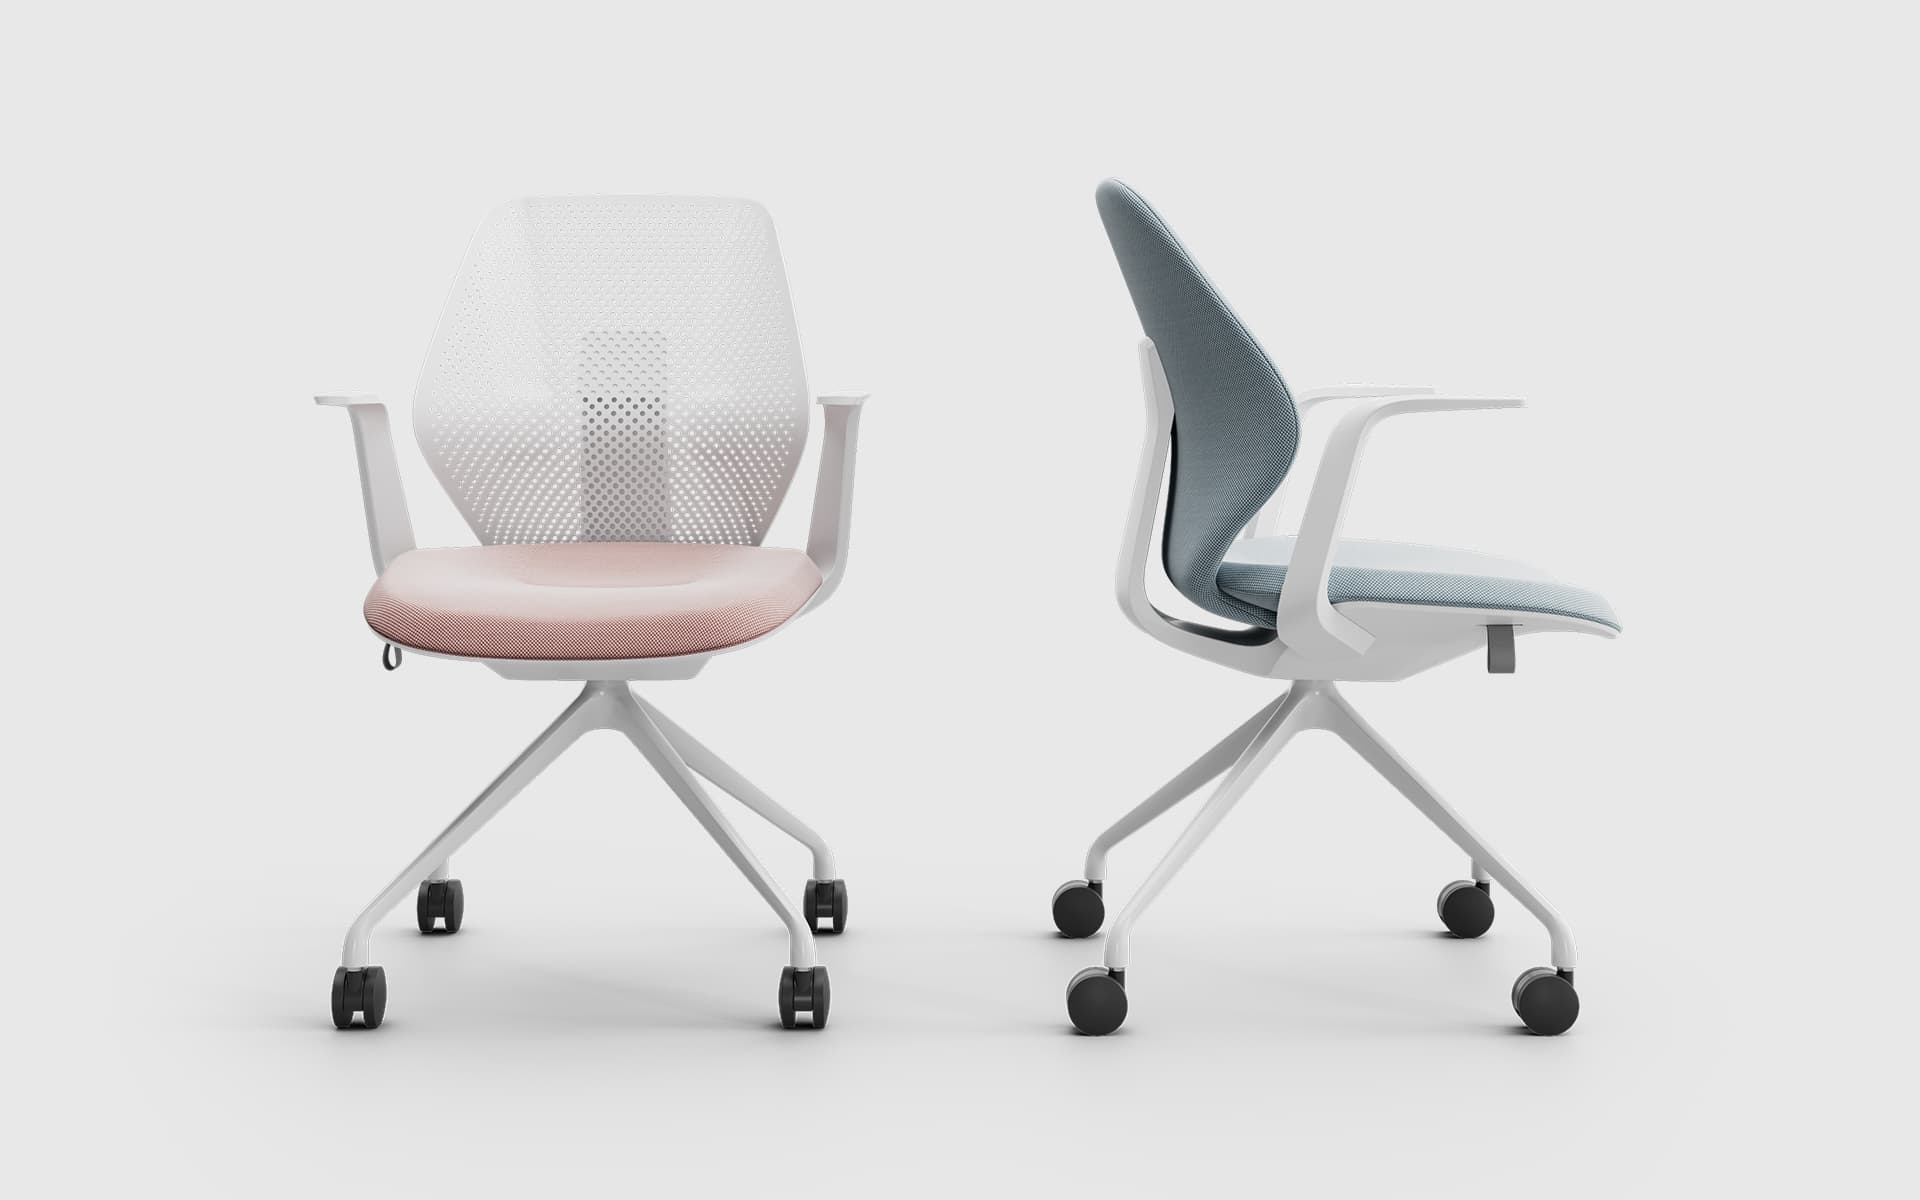 Two white ITOKI QuA office chairs by ITO Design with pink and blue